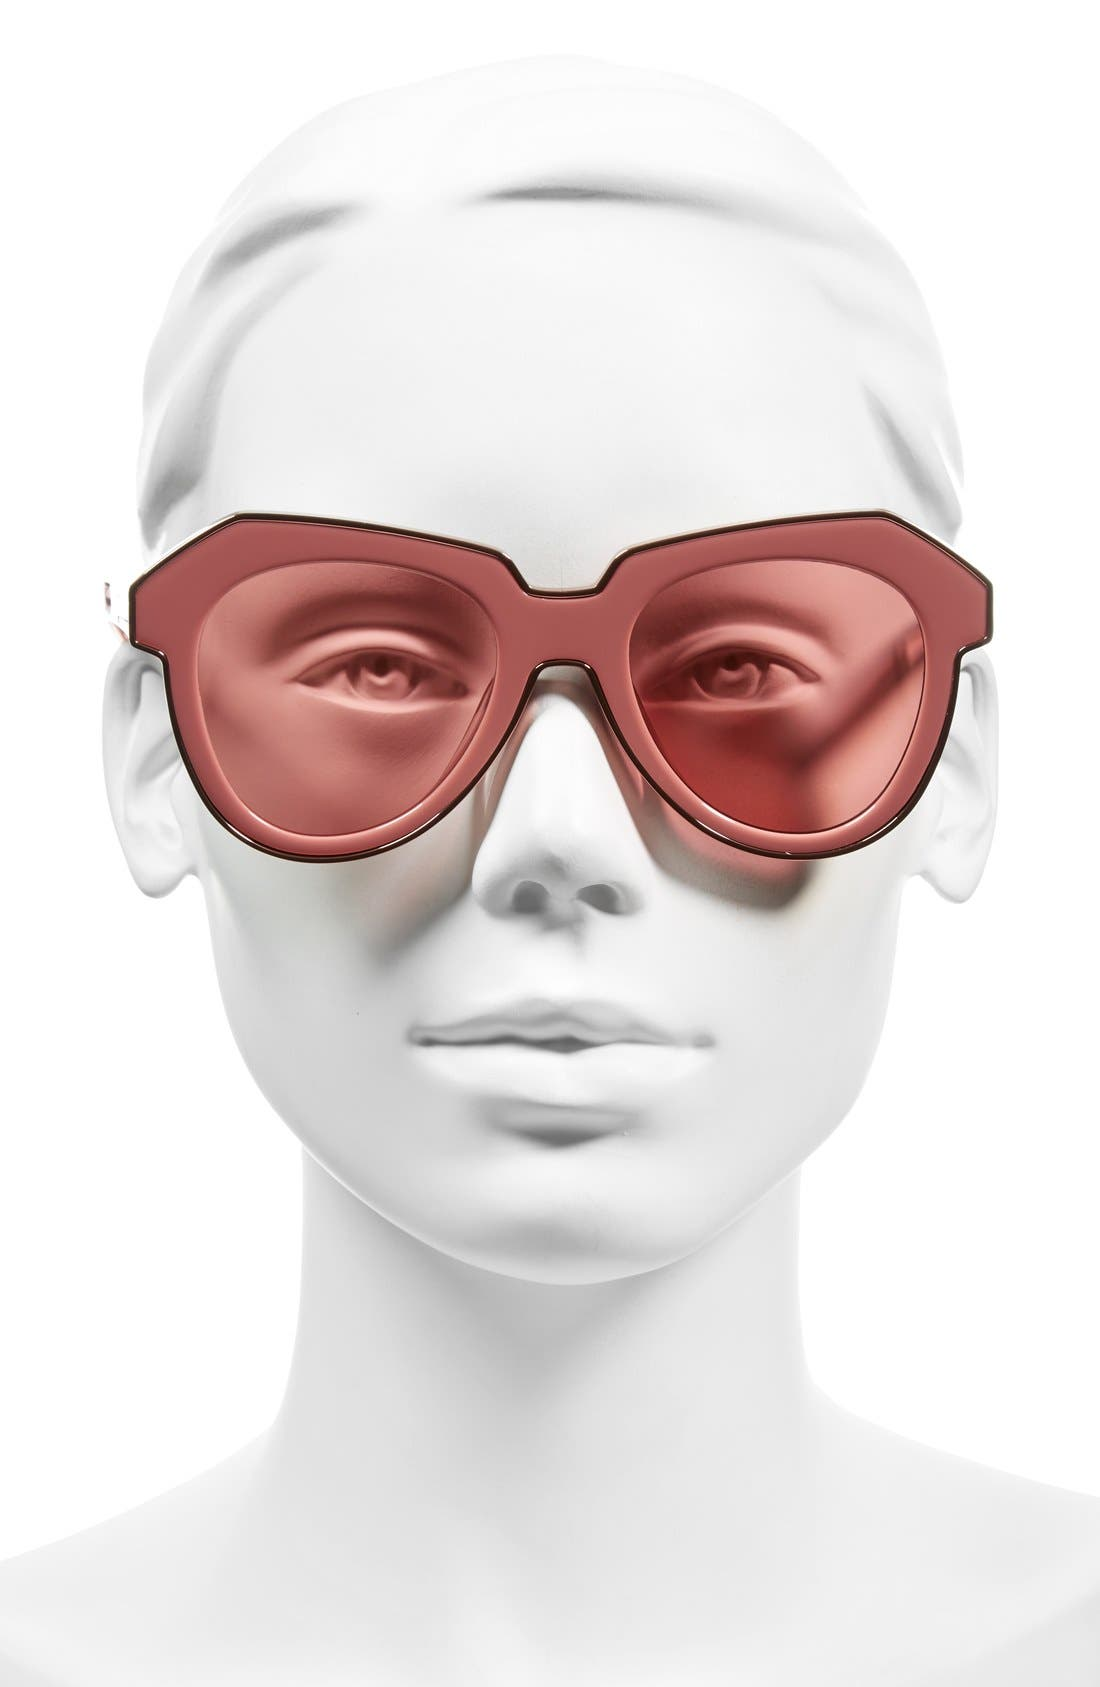 'One Astronaut - Arrowed by Karen' 49mm Sunglasses,                             Alternate thumbnail 2, color,                             Crystal Pink/ Rose Pink